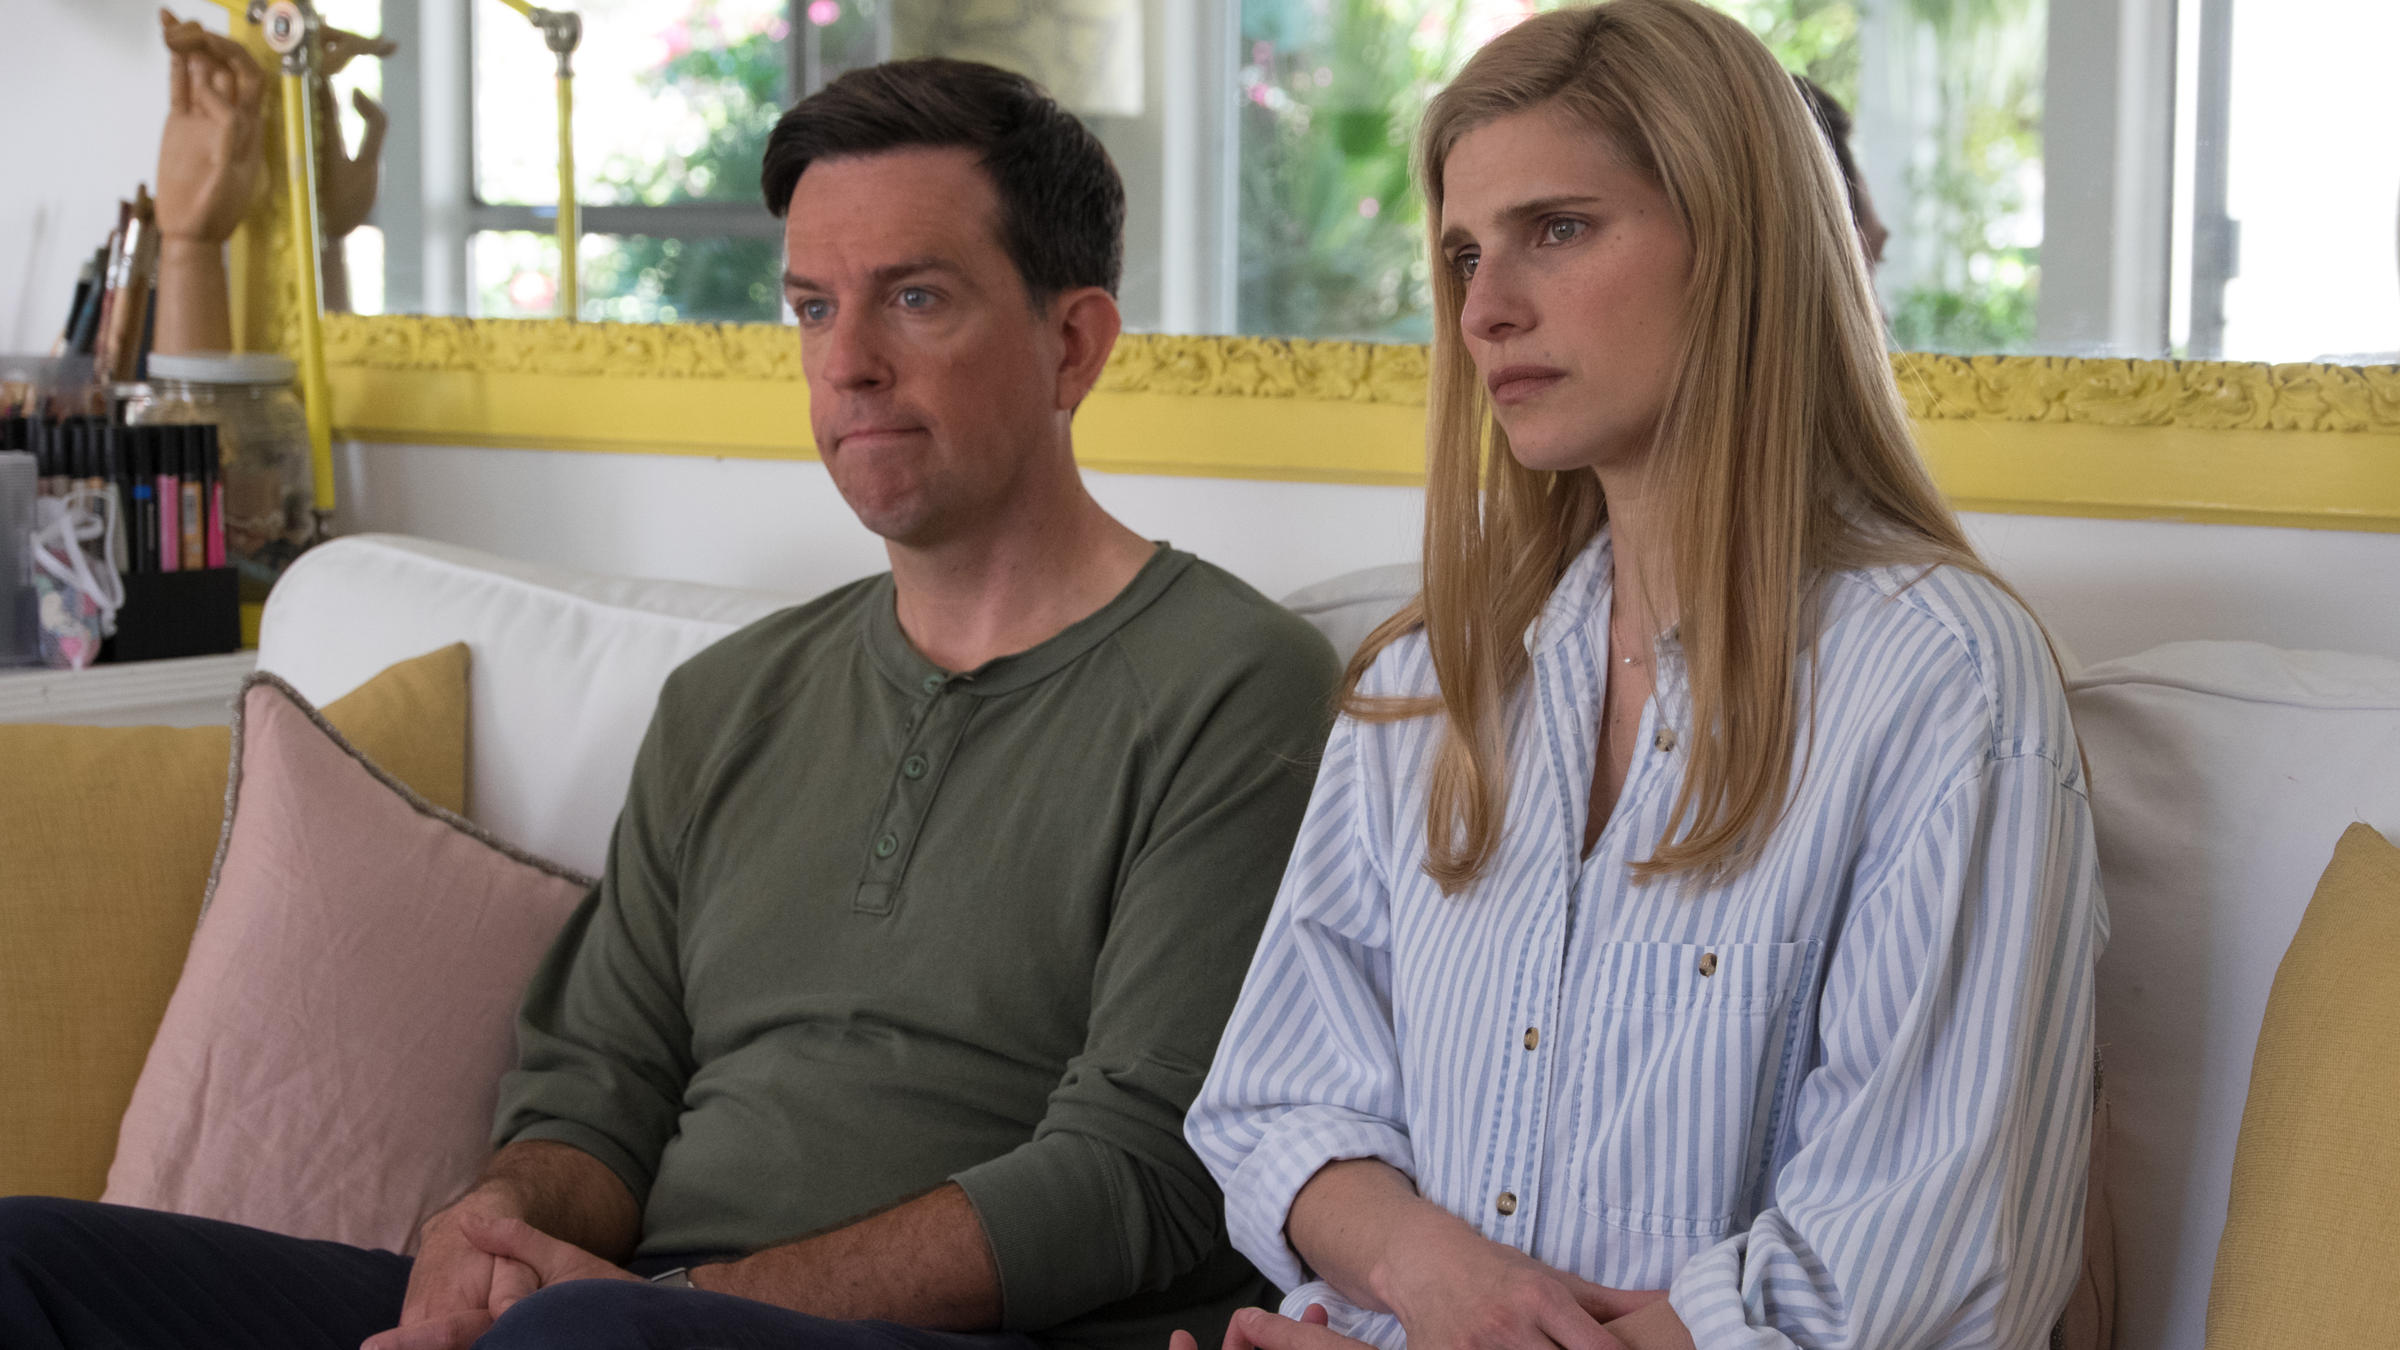 Lake Bell comedy explores marriage opt-out concept